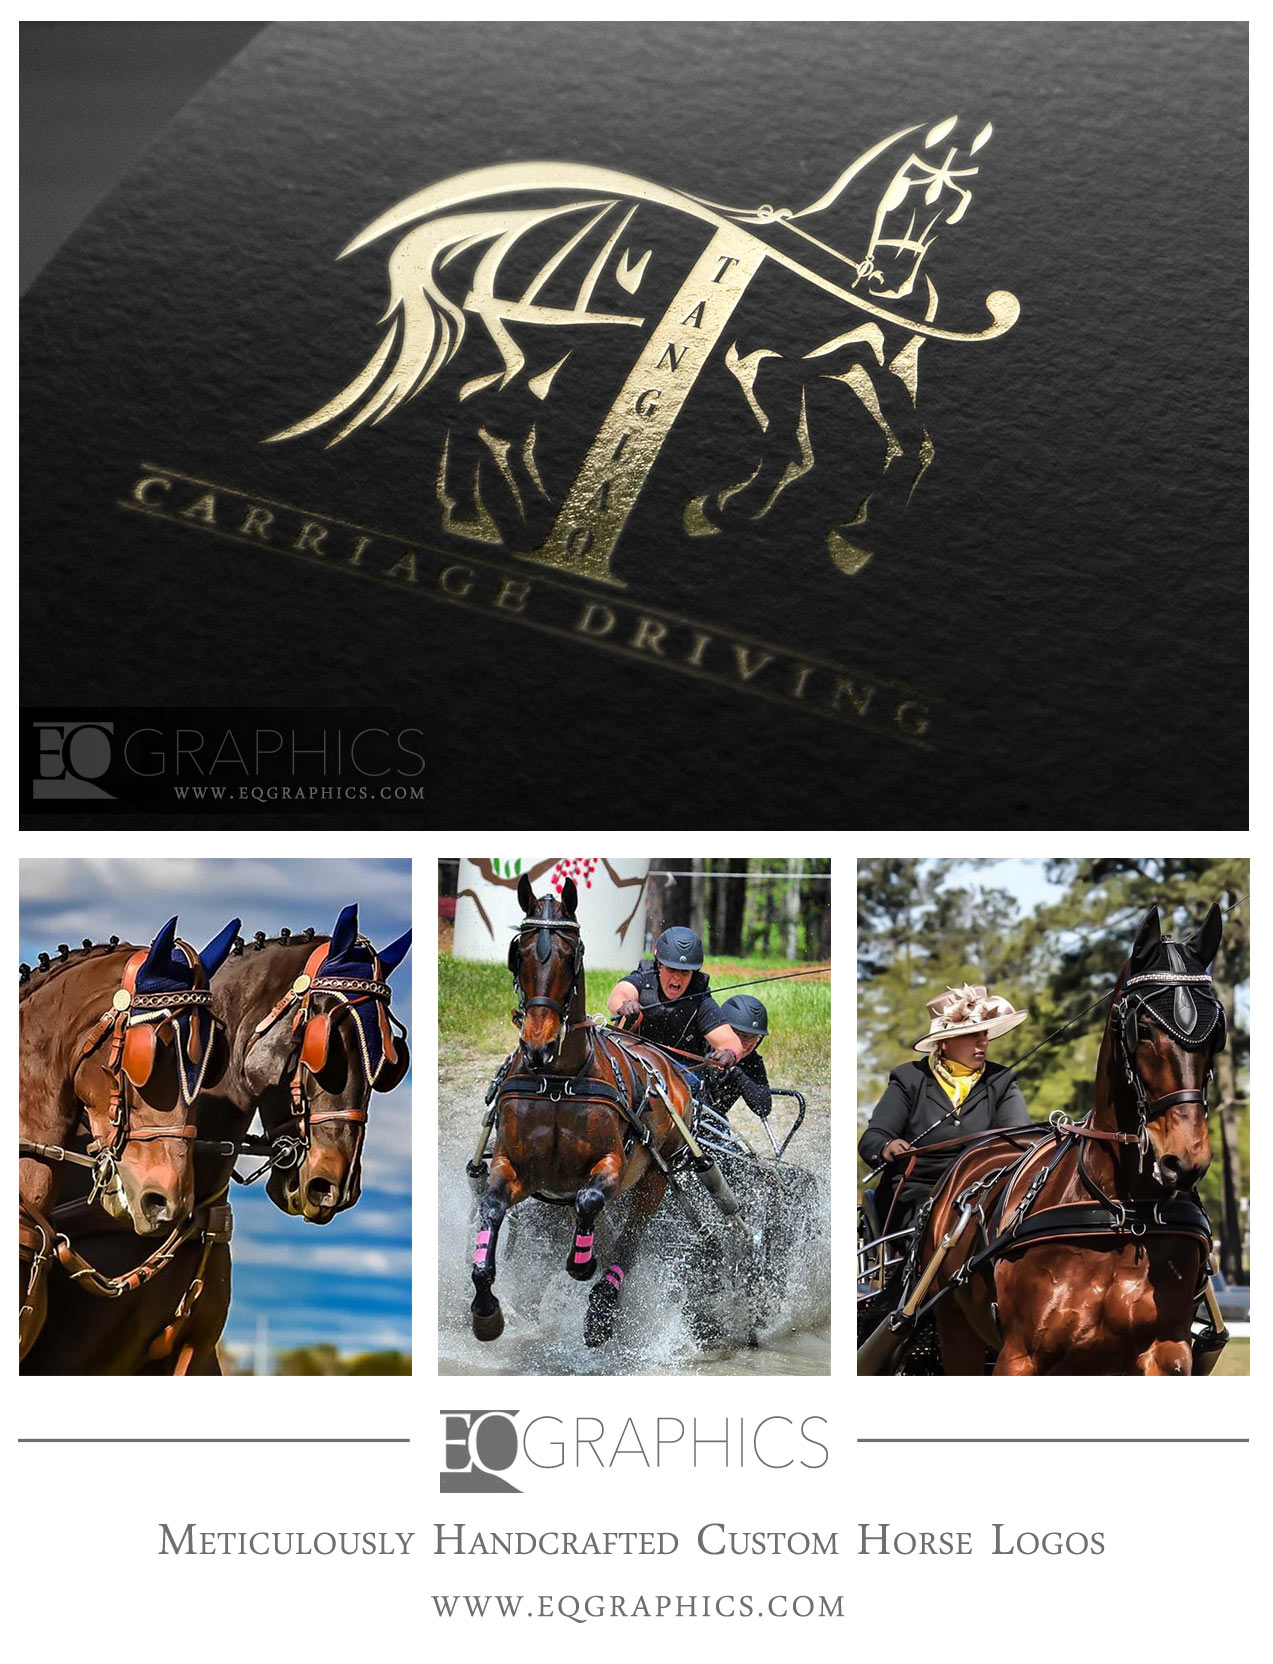 Tanglao Carriage Driving Custom CDE Horse Logo by EQ Graphics Equine Designer